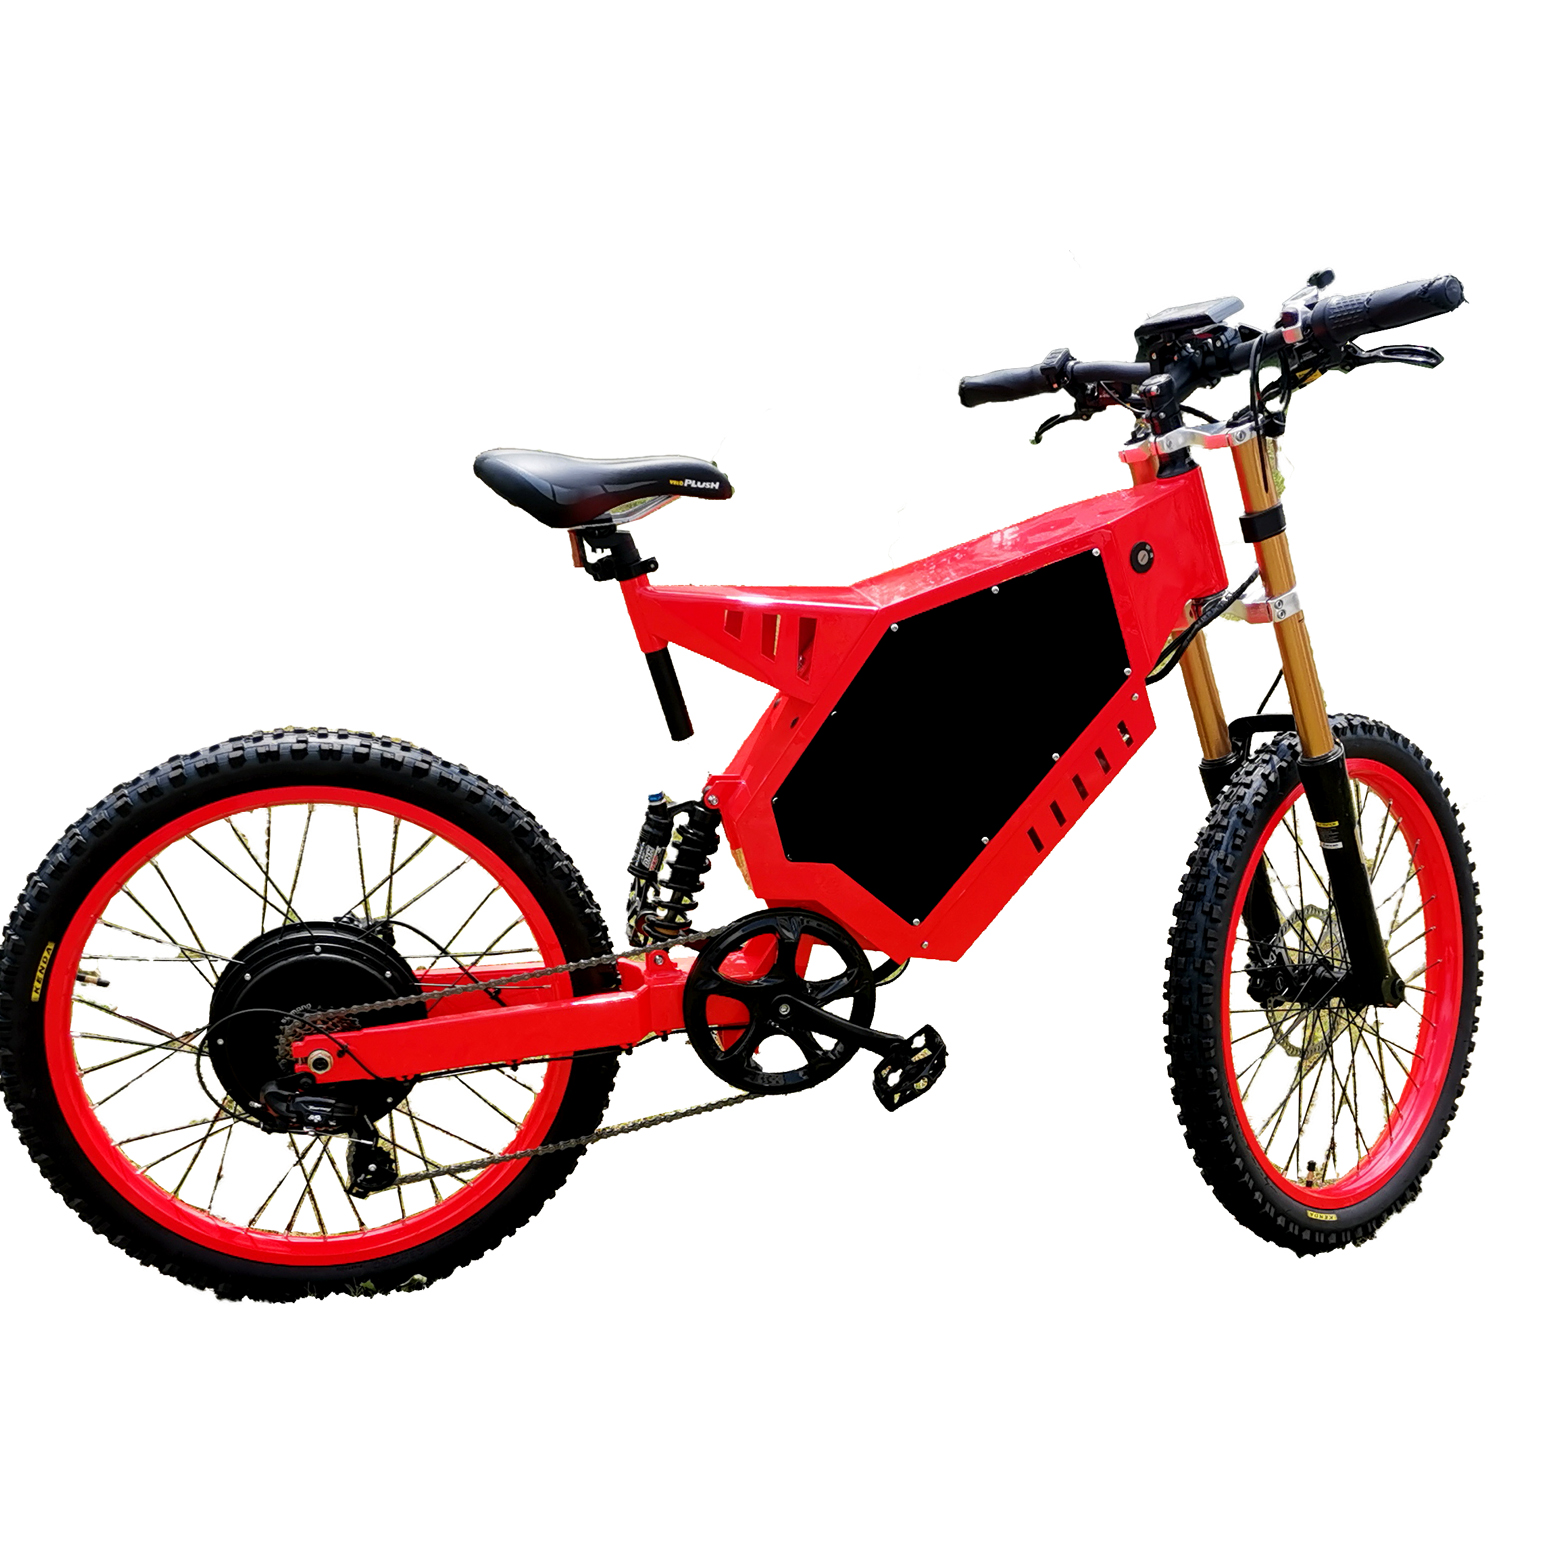 2020 New High Power 72v 5000w <strong>electric</strong> bike <strong>Electric</strong>+Bicycle with 26*2.6 wheel